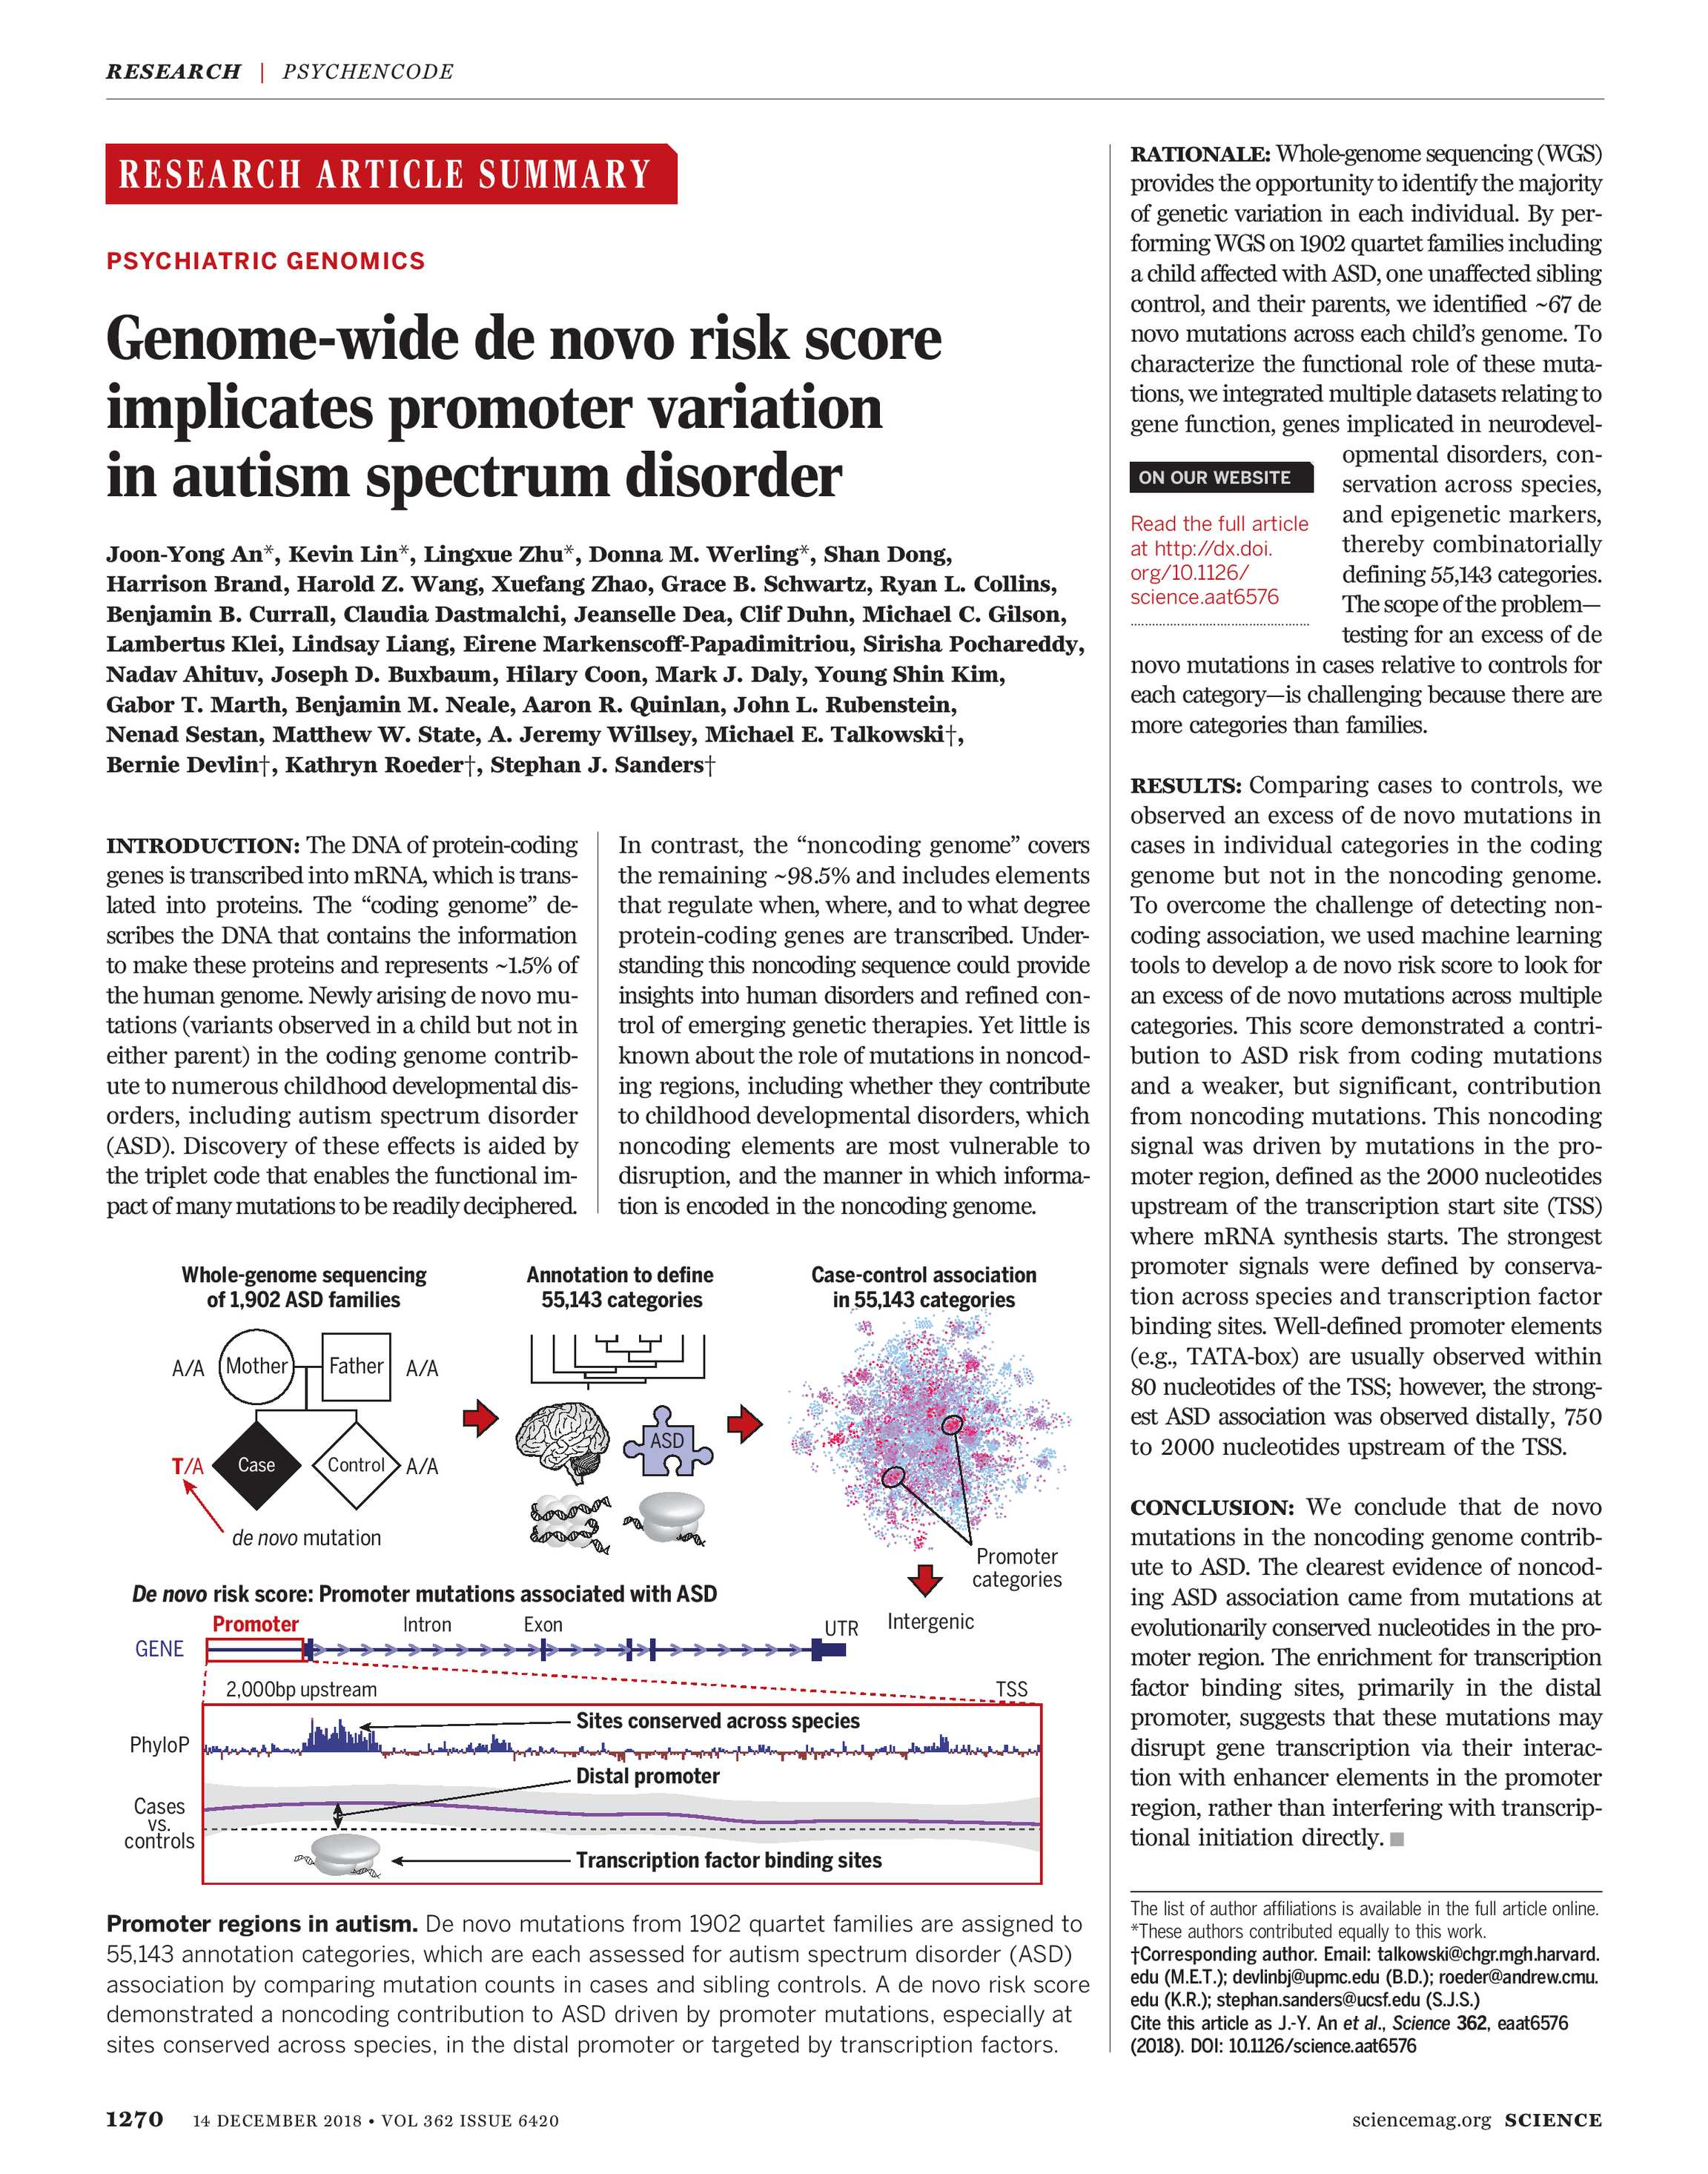 Science Magazine - December 14, 2018 - page 1270